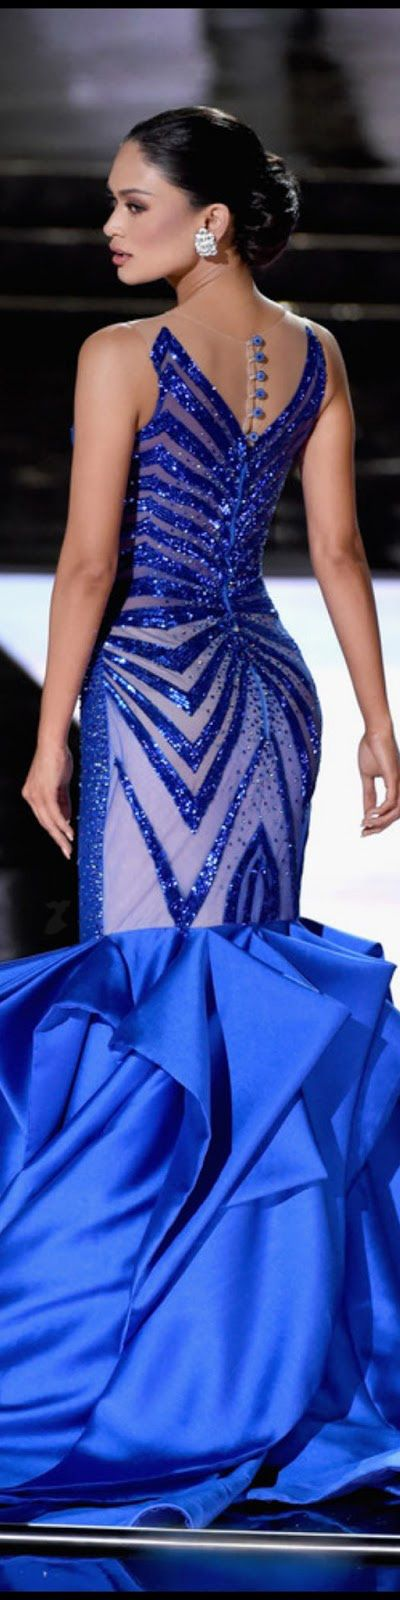 Pia - Miss Philippines in Blue